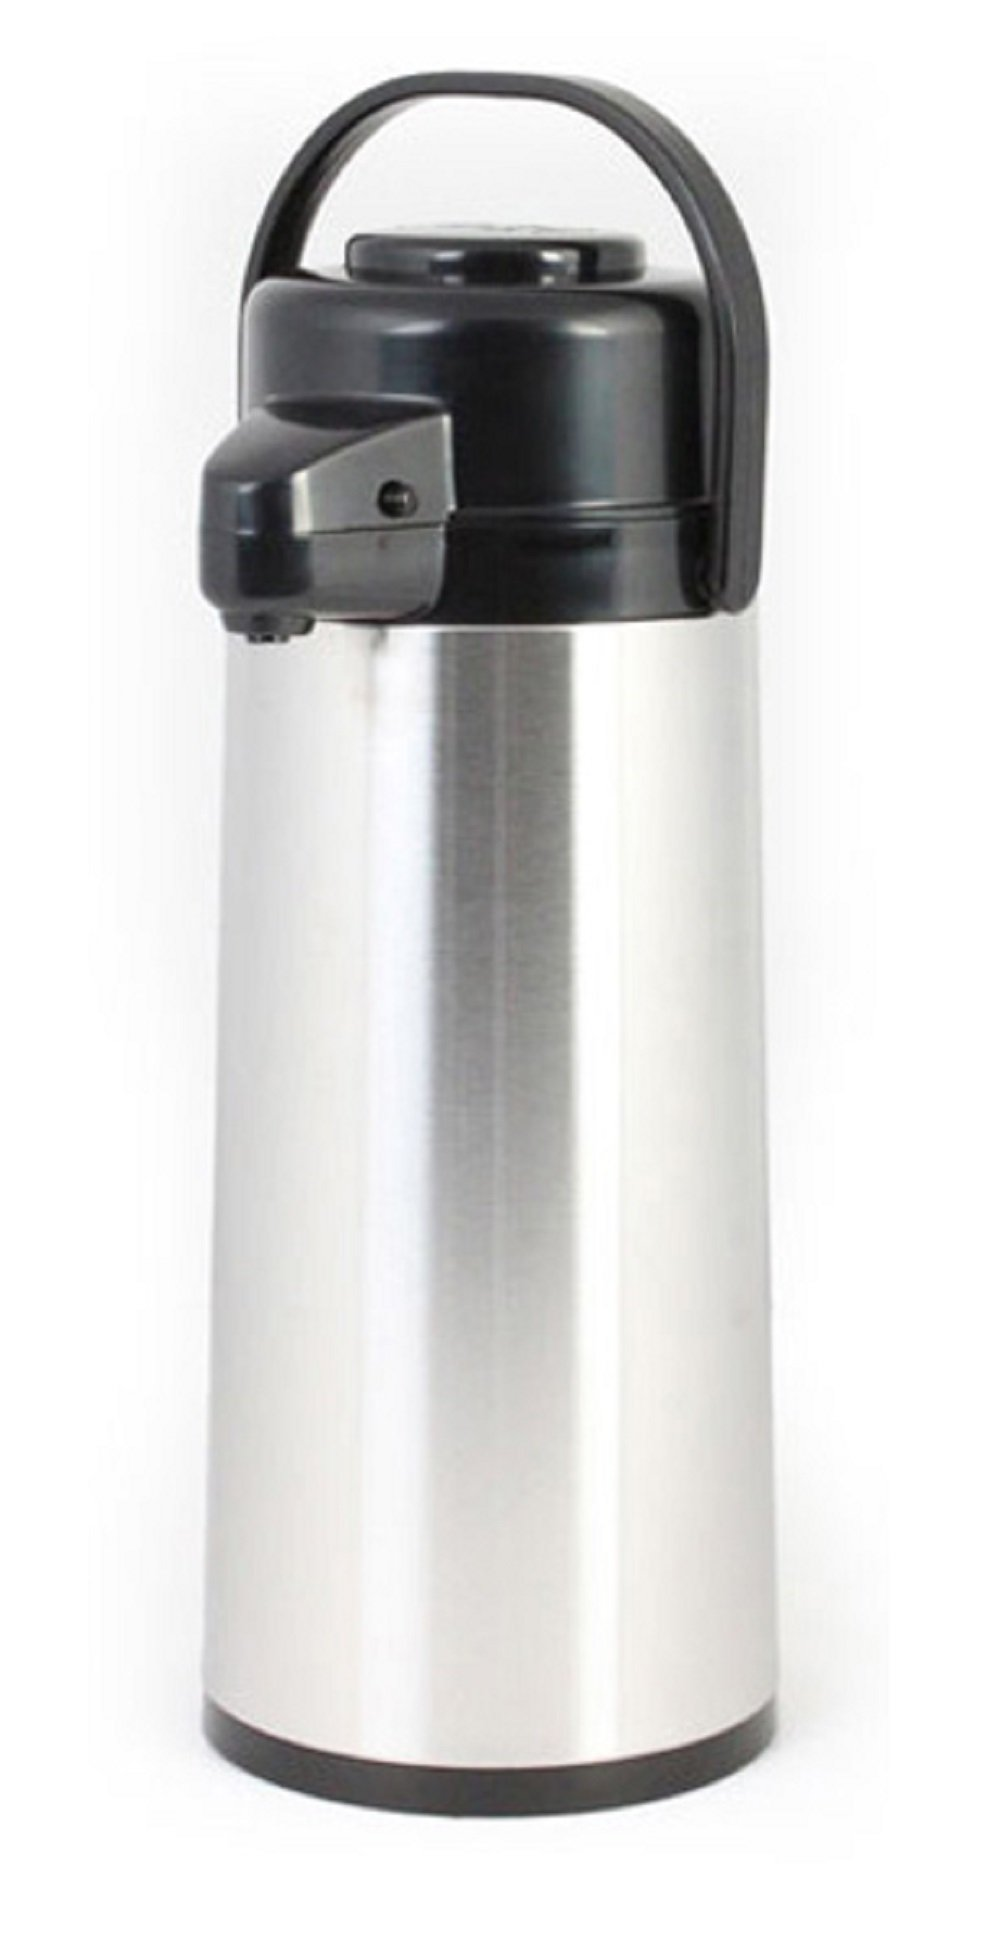 Thunder Group ASPG022, 2.5 lt / 84-Ounce Glass Lined Airpot, Hot Coffee Dispenser, Decaf Push Button Vacuum Server